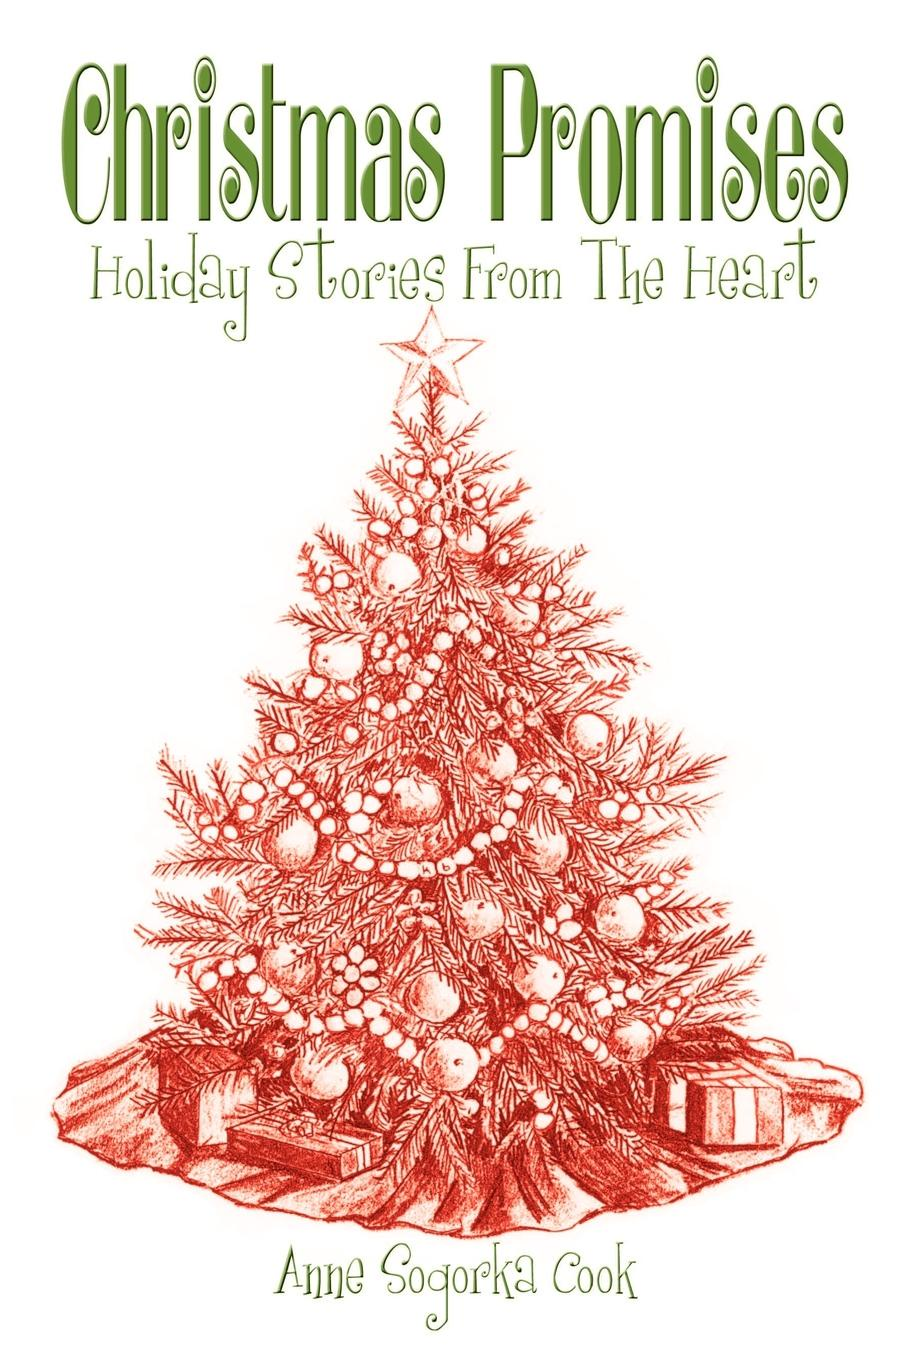 Christmas Promises. Holiday Stories From The Heart. Anne Sogorka Cook